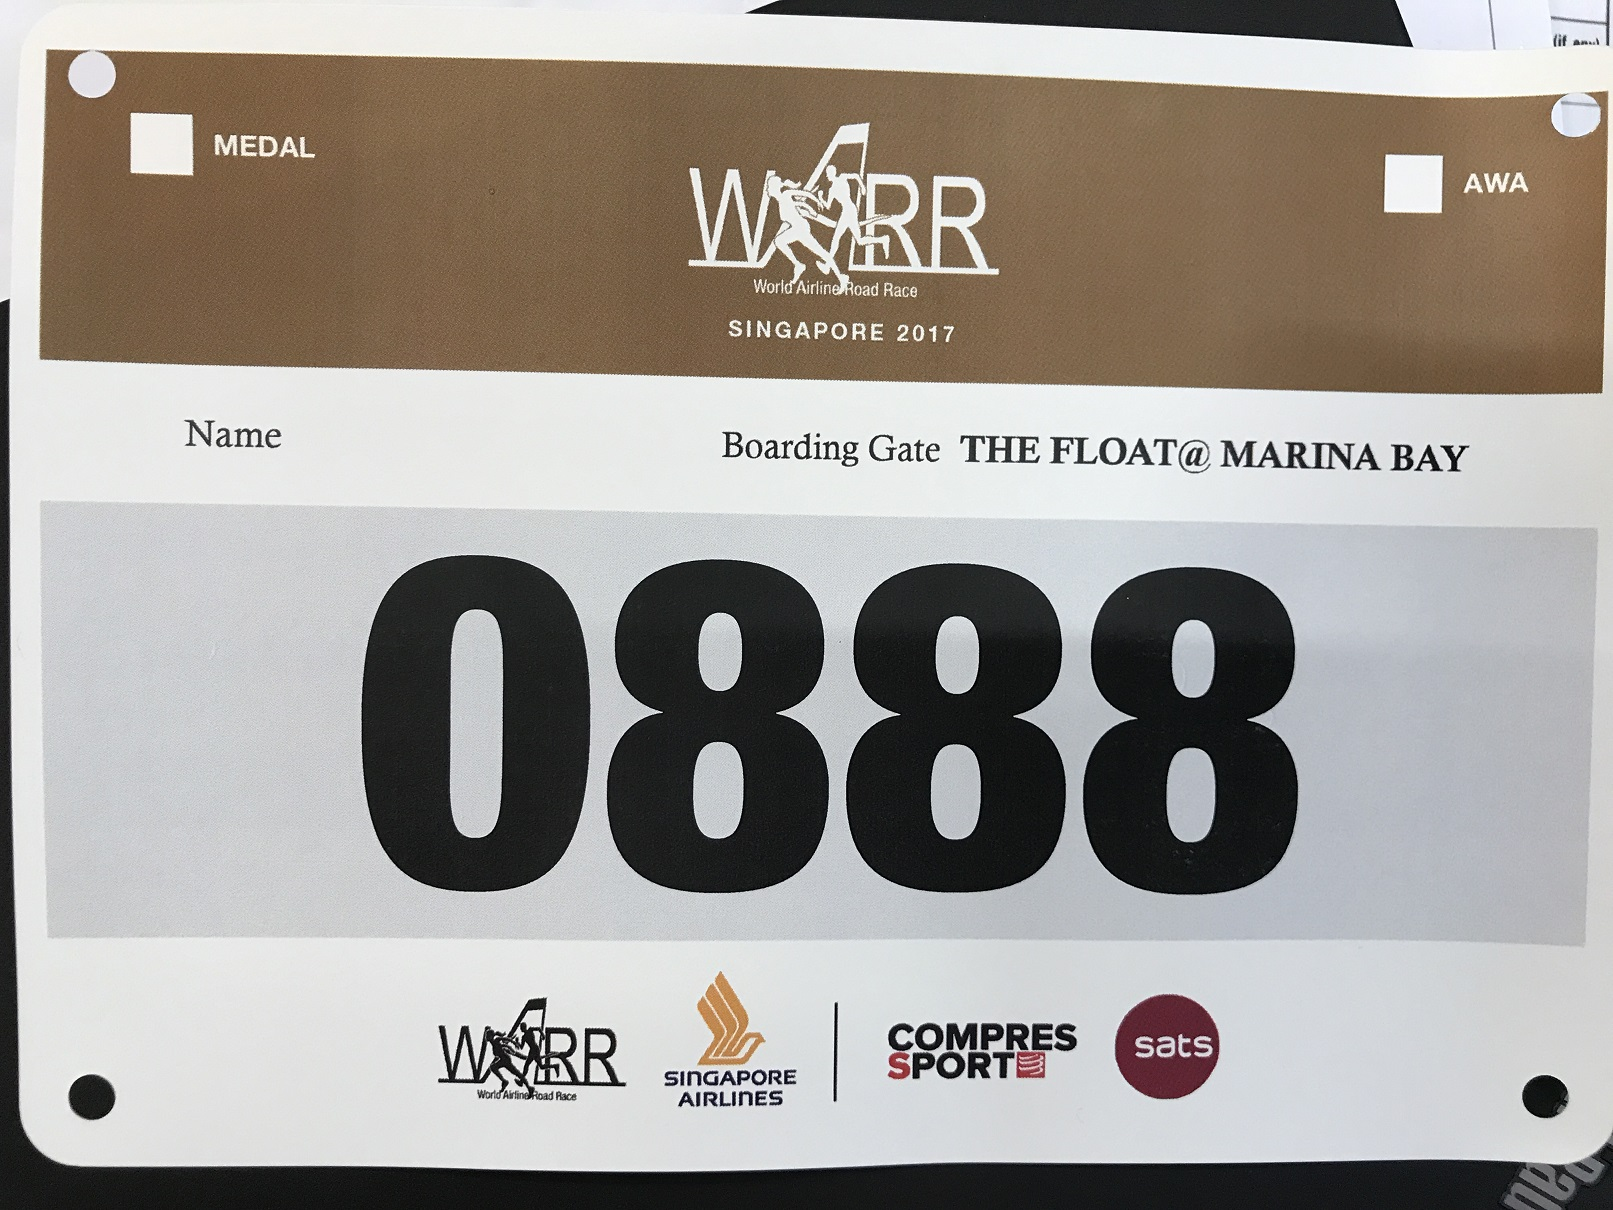 WARR: World Airline Road Race! Aviation and Running! Both my favourites together!